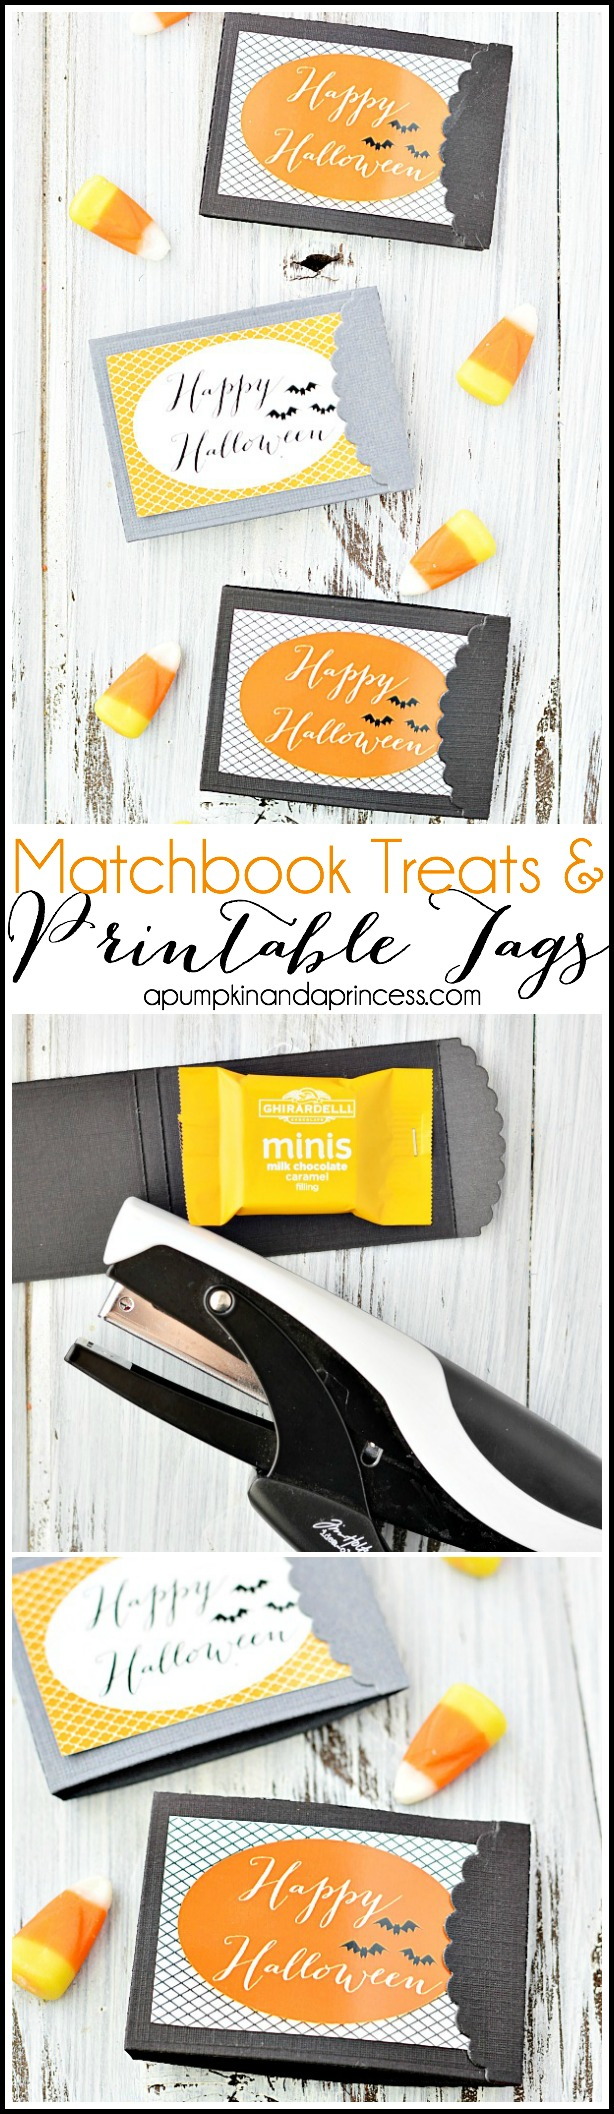 Matchbook Treats - Printable Halloween Tags